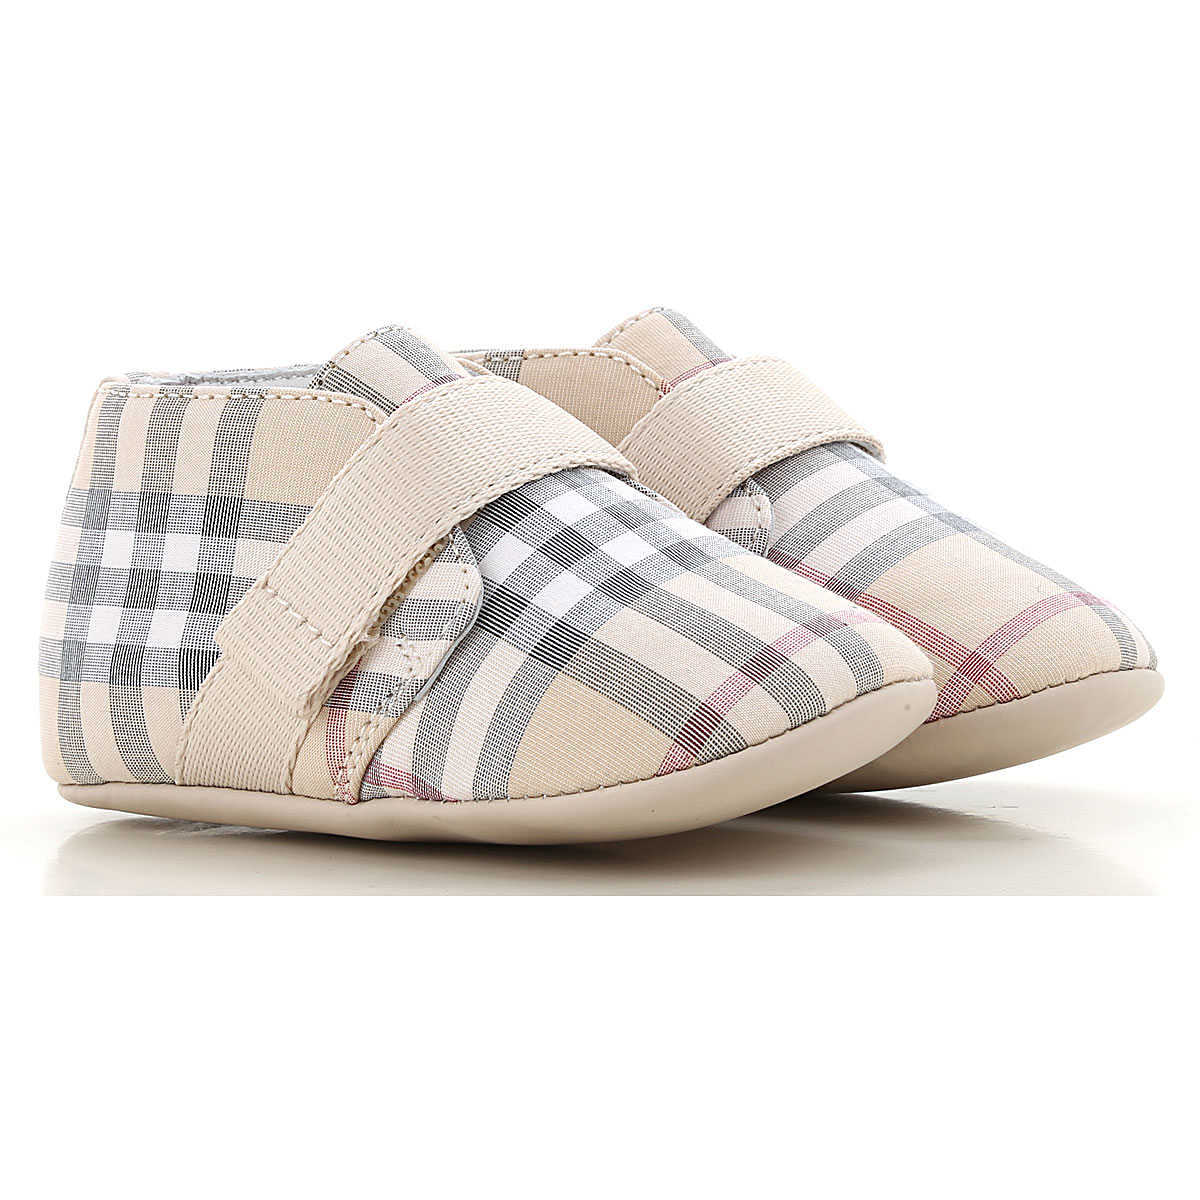 Burberry Baby Shoes for Boys On Sale Pale Stone - GOOFASH -